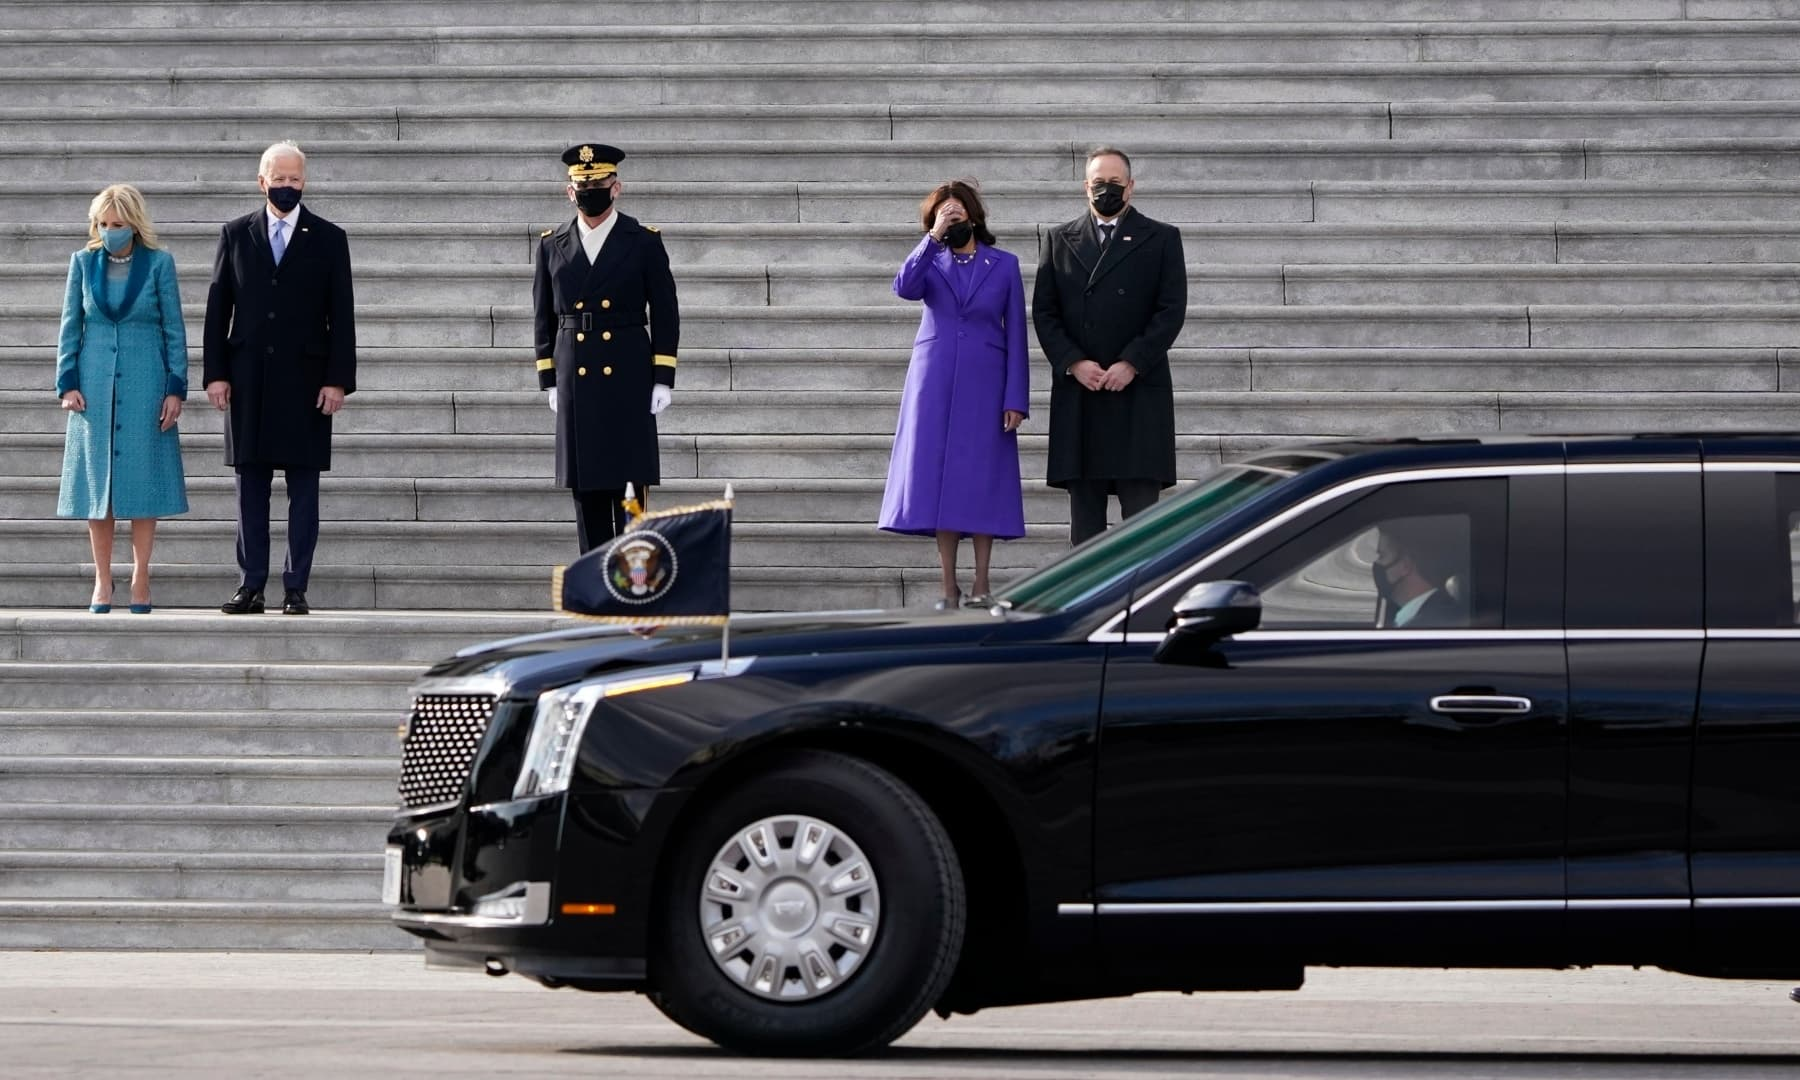 President Joe Biden, his wife Jill Biden, Vice President Kamala Harris and her husband Doug Emhoff prepare to depart the East Front of the Capitol at the conclusion of the inauguration ceremonies, in Washington, Wednesday. — AP